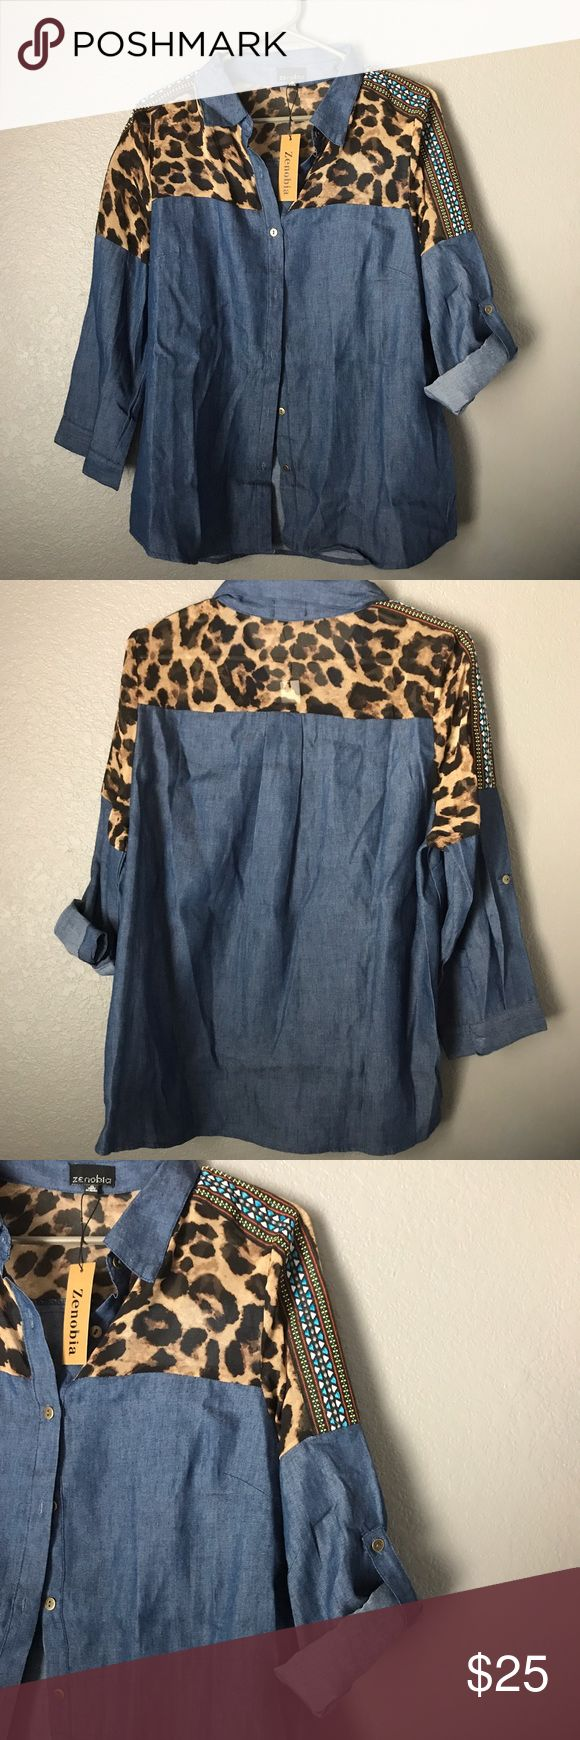 Blue Button Up w/Cheetah Print & Tribal Designs This super bold and unique button up with cheetah print and tribal designs would pair so well with jeans and some boots! The sleeves can either be worn down or rolled up, and the cheetah print section is a see through material! This shirt is a size XL. A NWT Boutique Item.💖 Tops Button Down Shirts